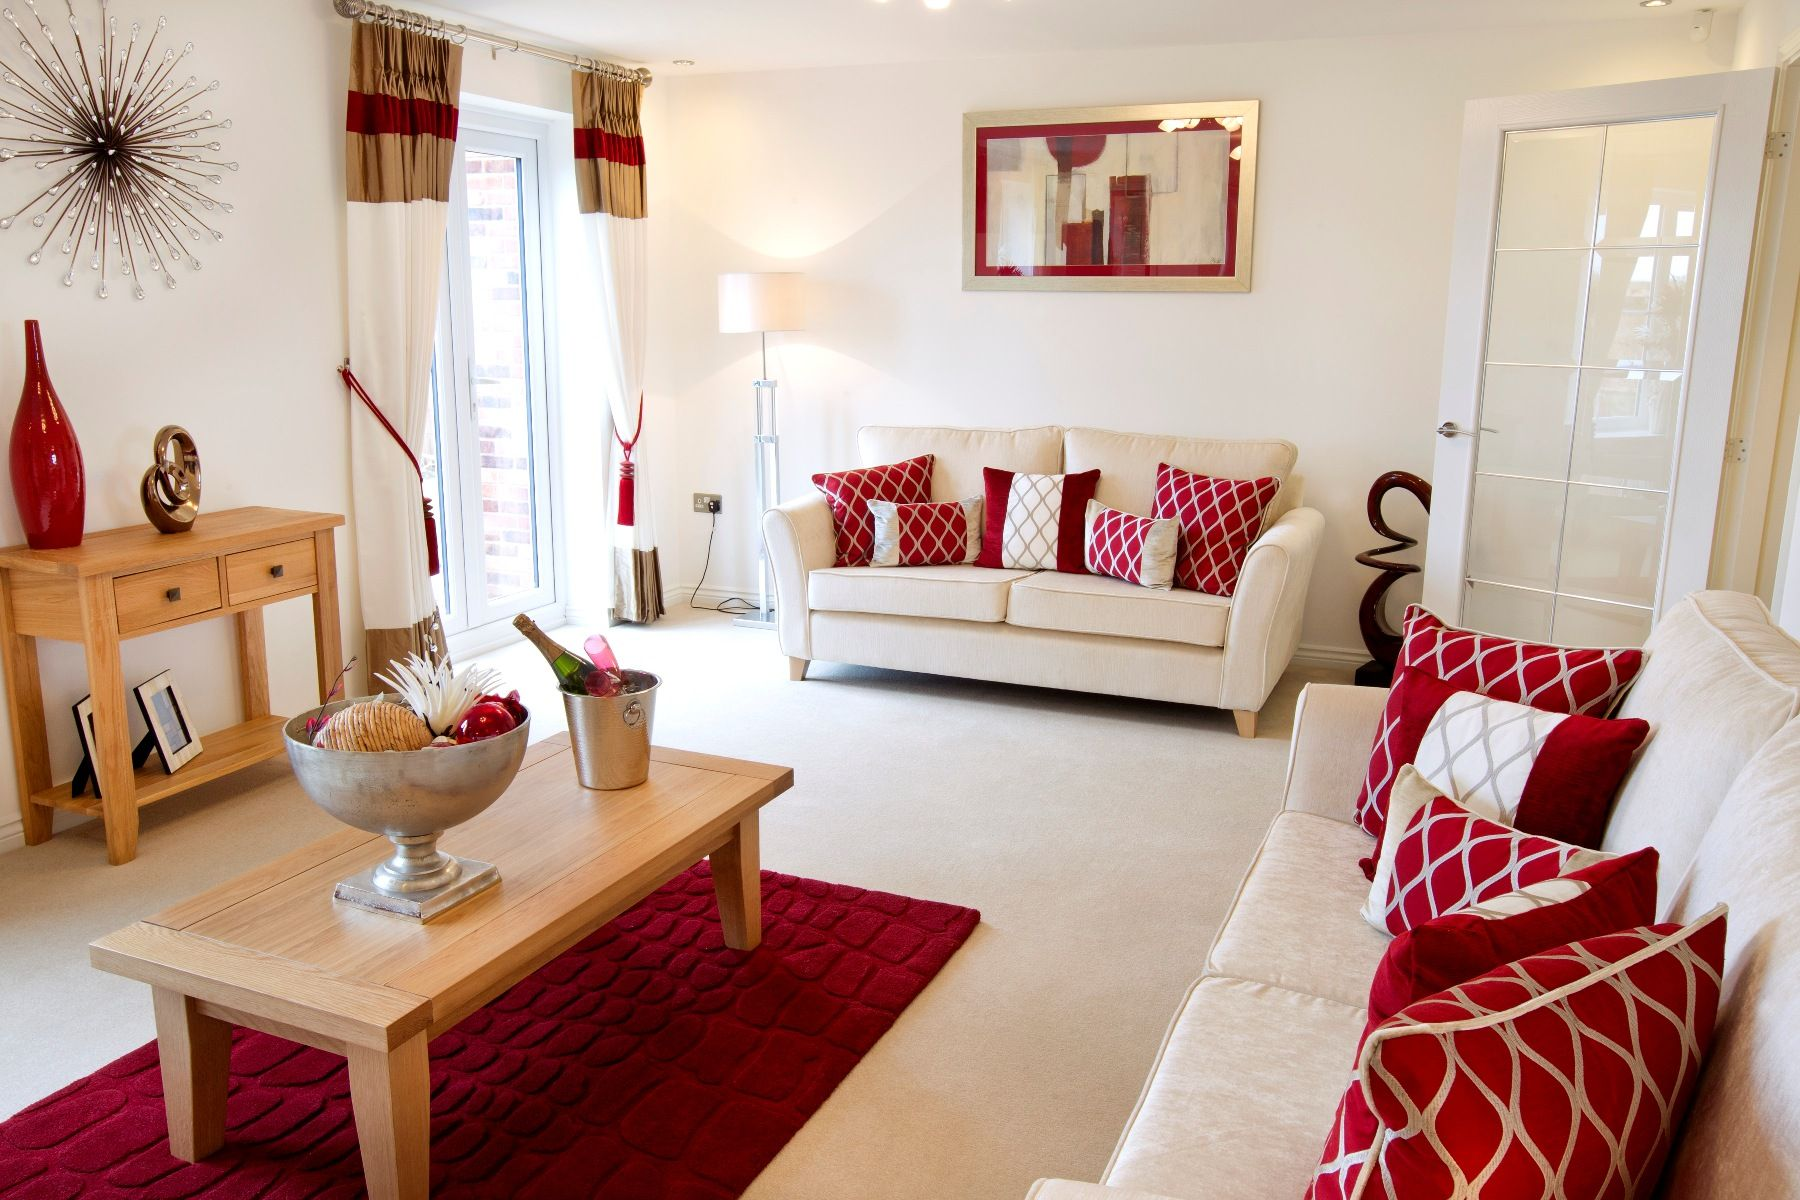 Red Living Room: Red Hues Complement The Welcoming Cream Interior Of This